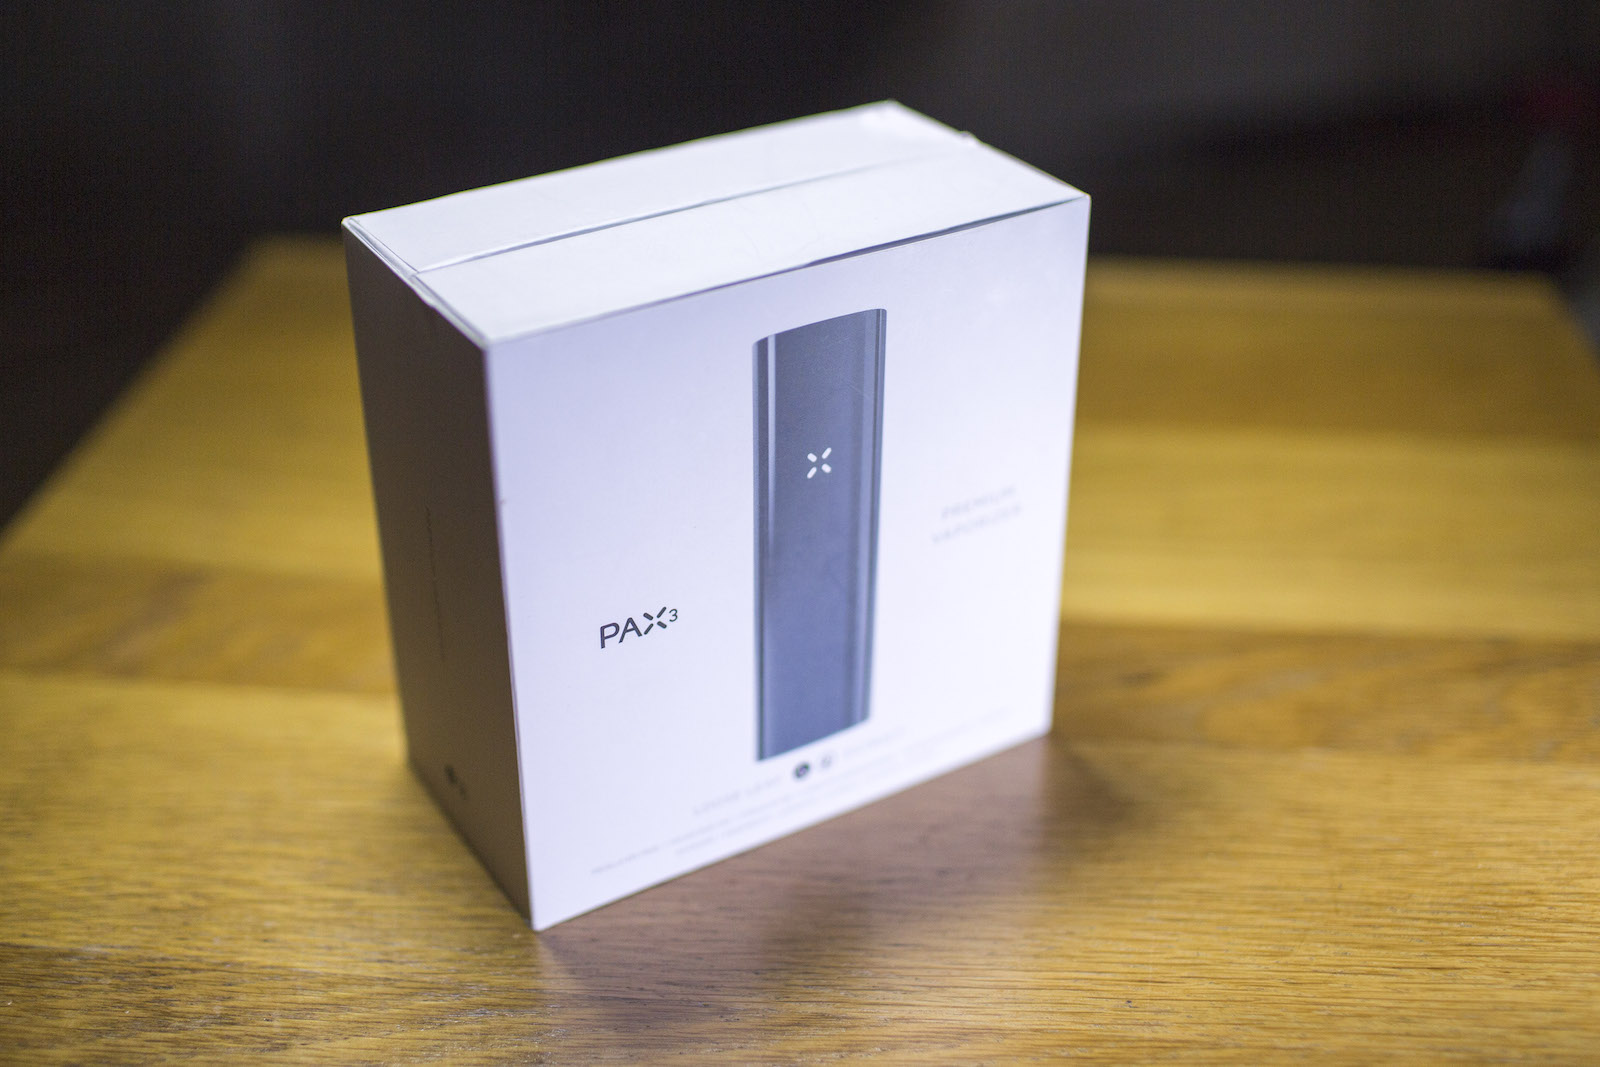 Pax3 - comes in a nice box